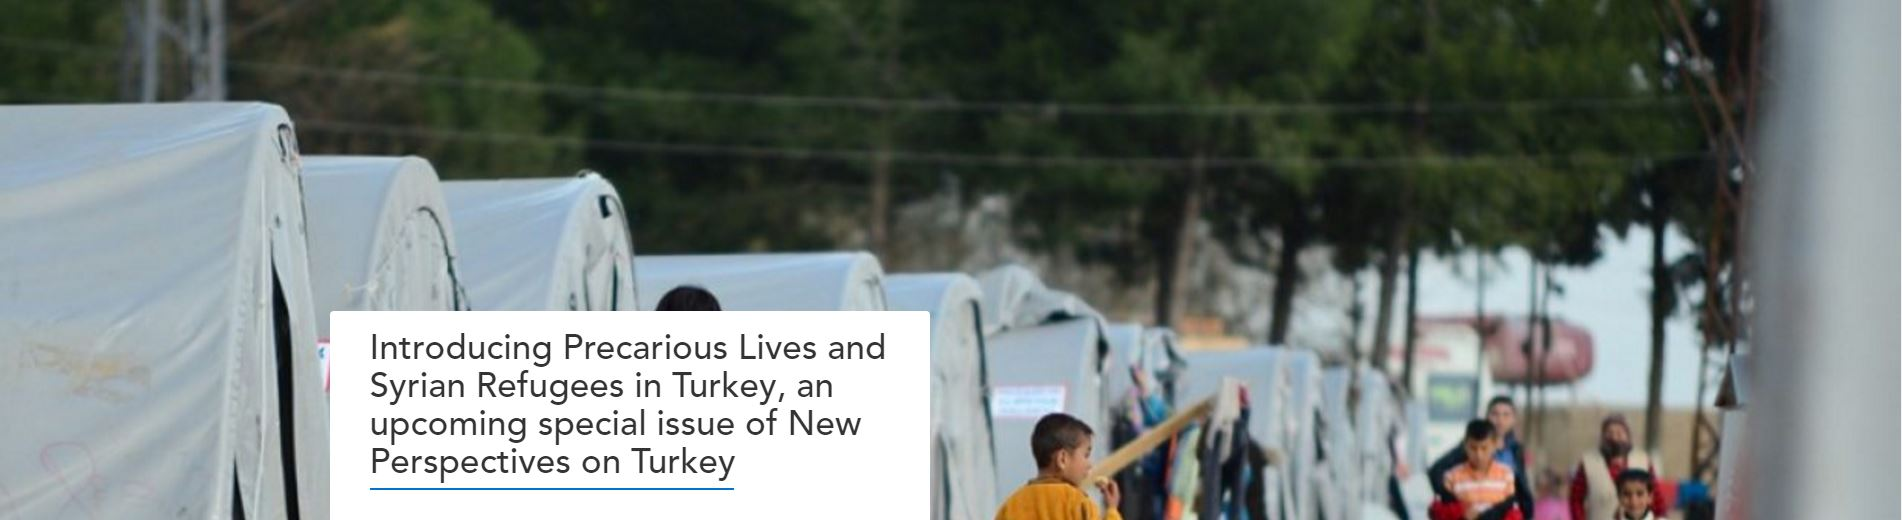 Introducing Precarious Lives and Syrian Refugees in Turkey